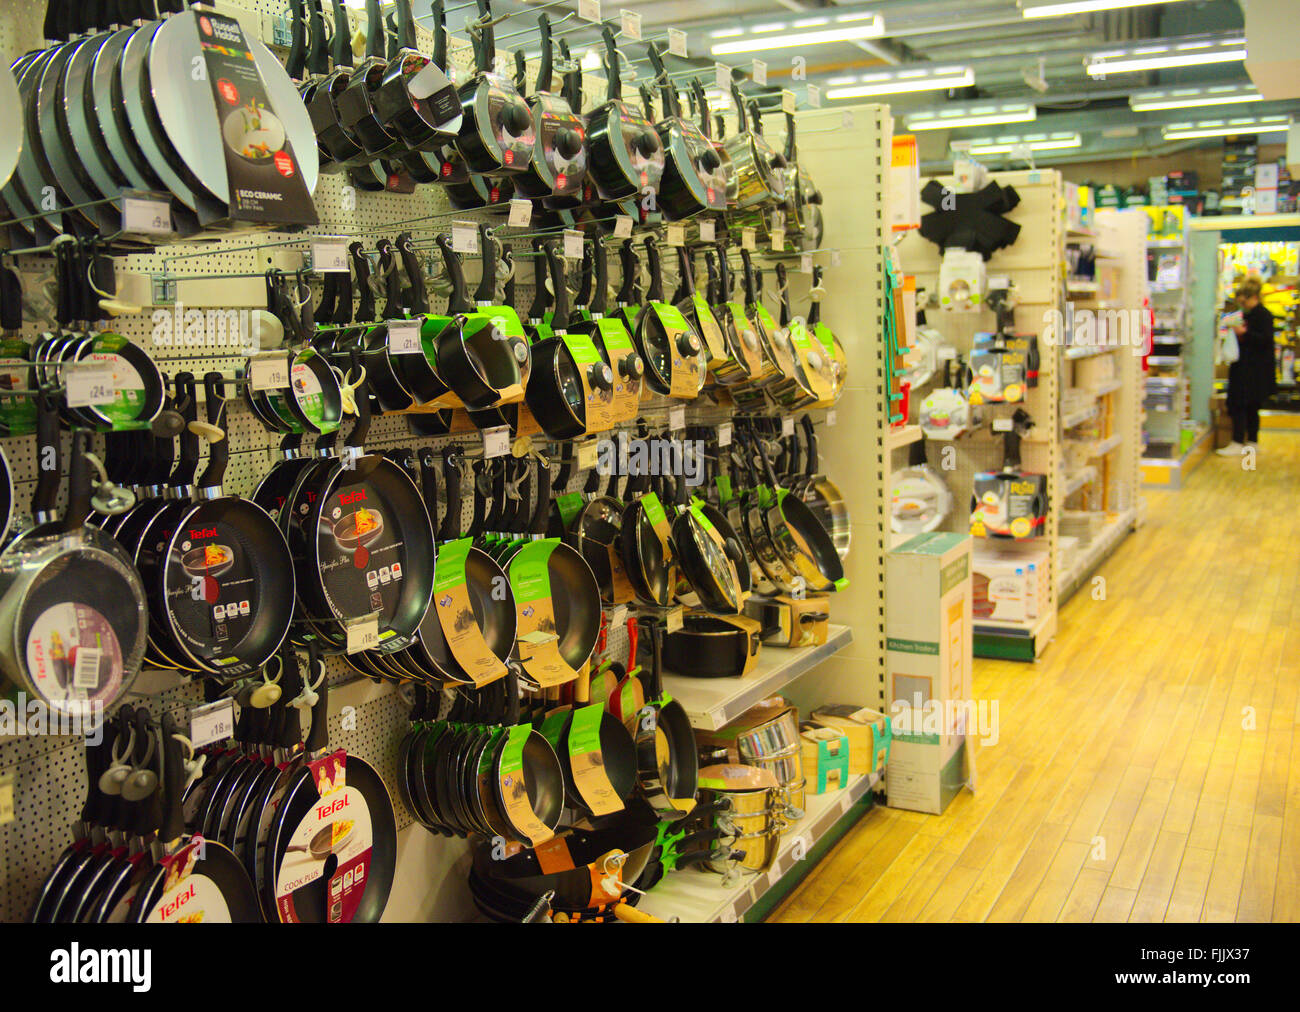 Pots and pans hanging on display for sale in shop - Stock Image